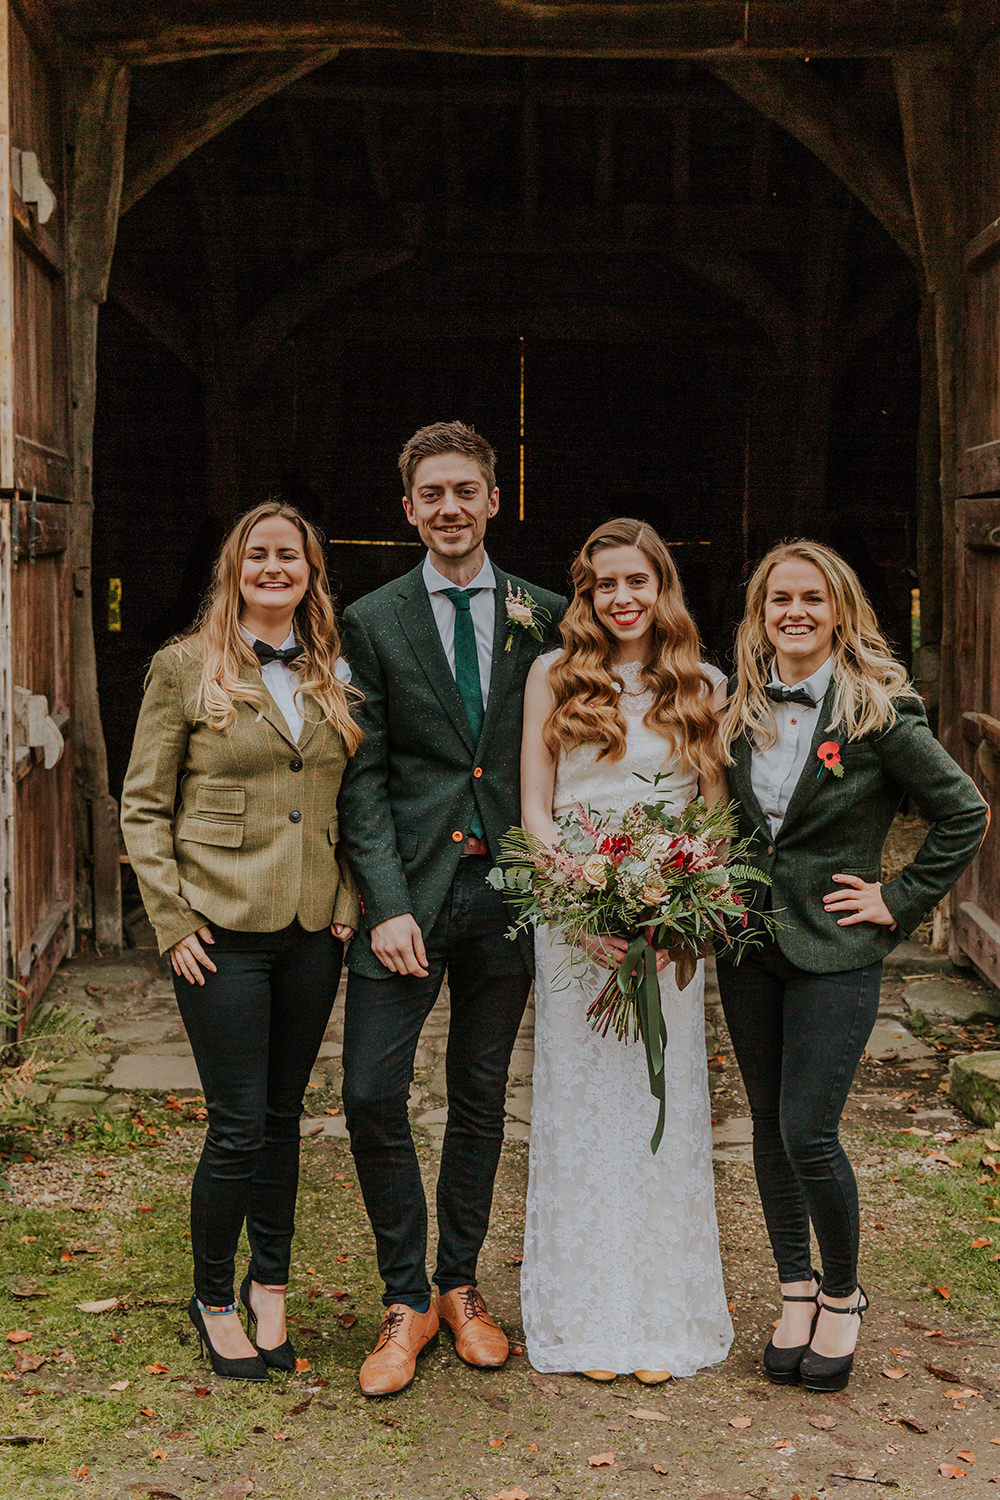 Best Women Jackets Bow Ties Simple Autumn Wedding Maddie Farris Photography